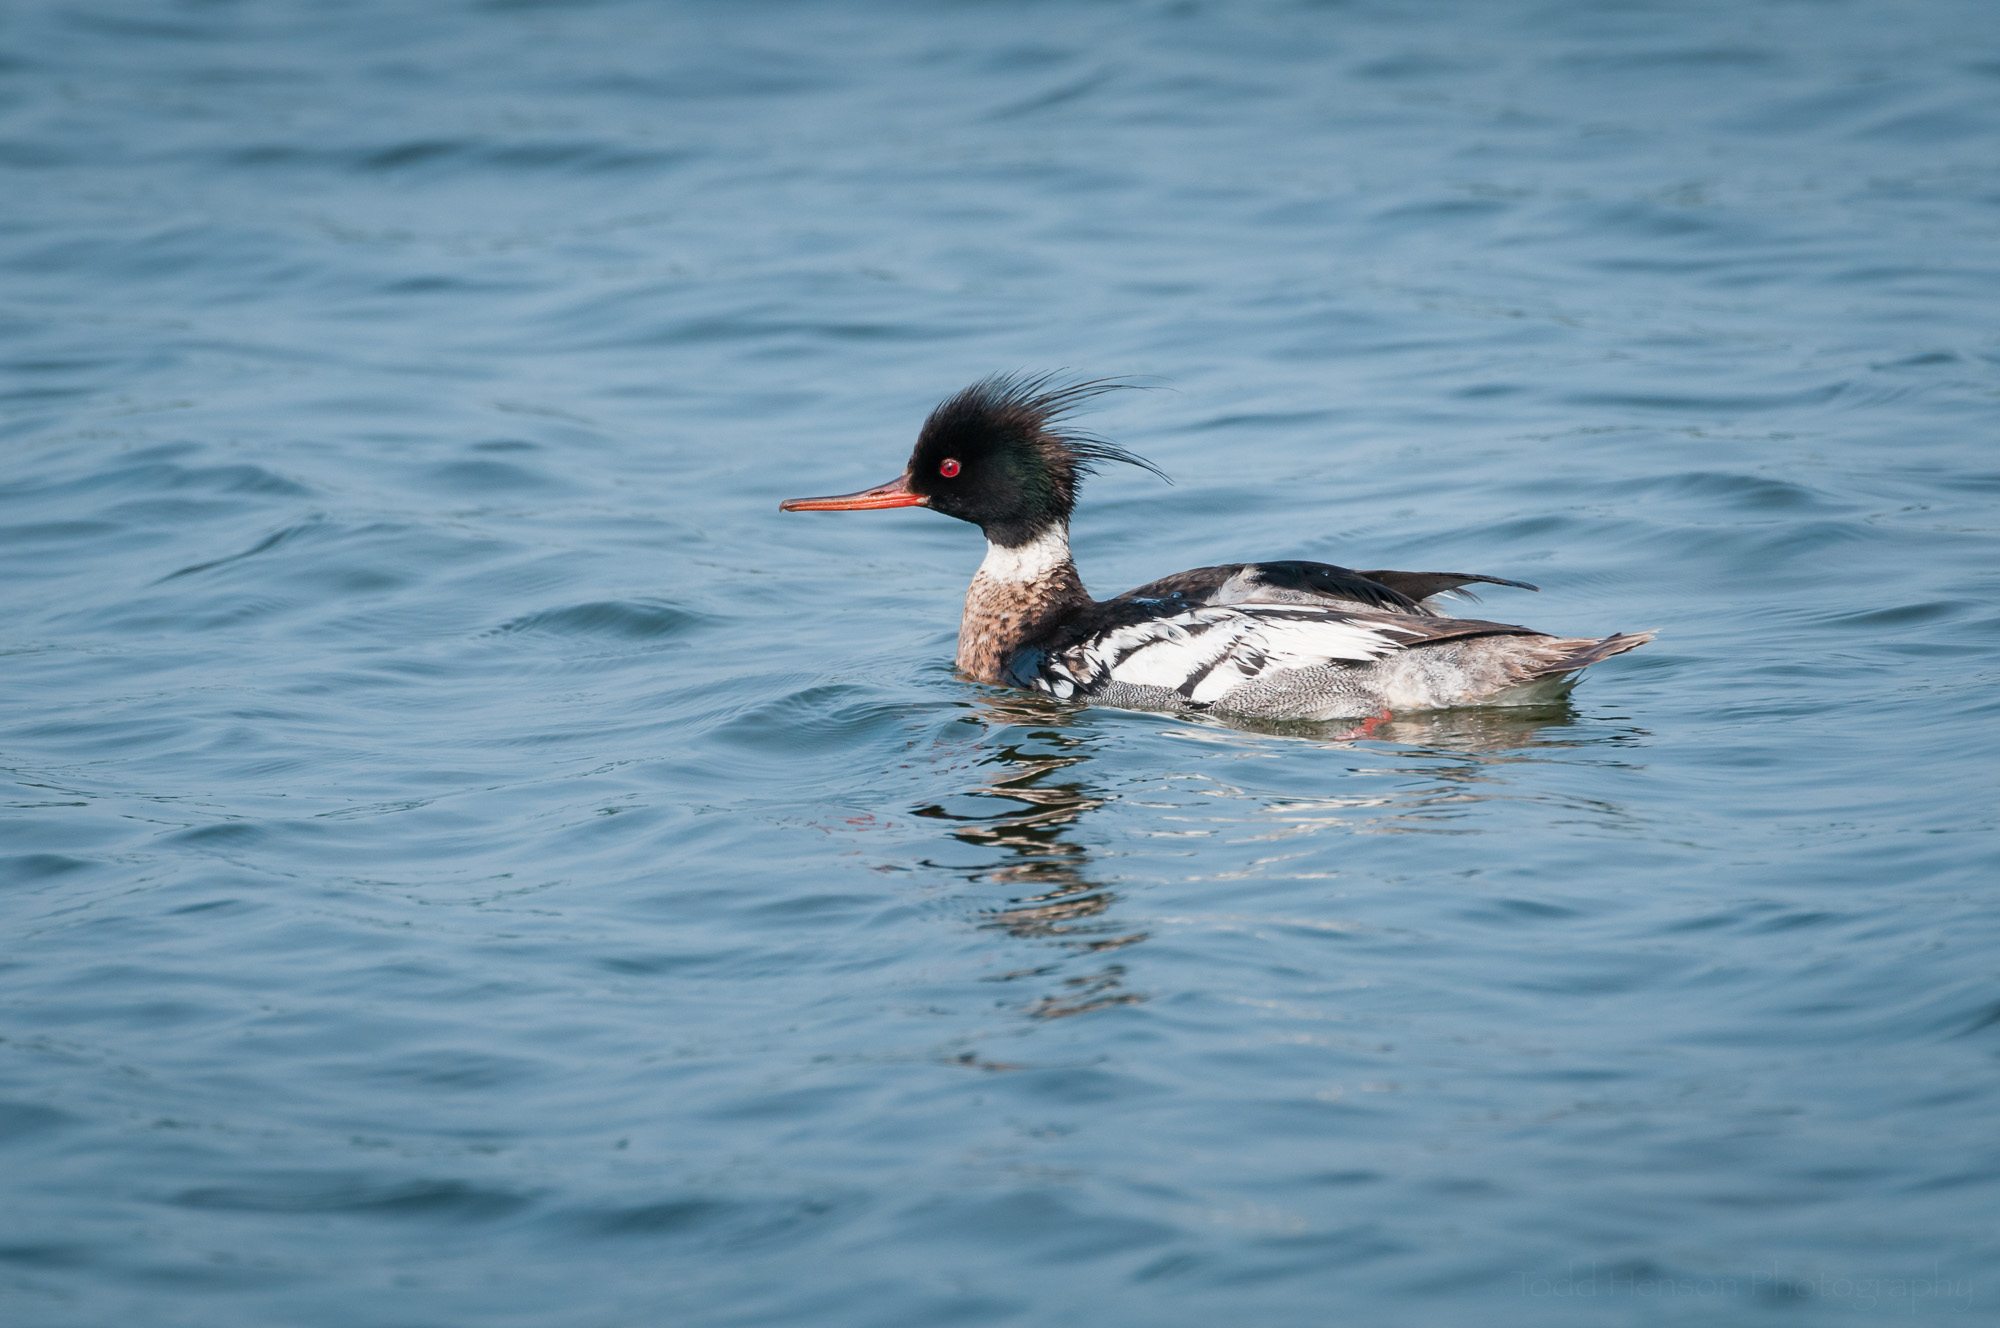 Male Red-breasted Merganser swimming in the bay.